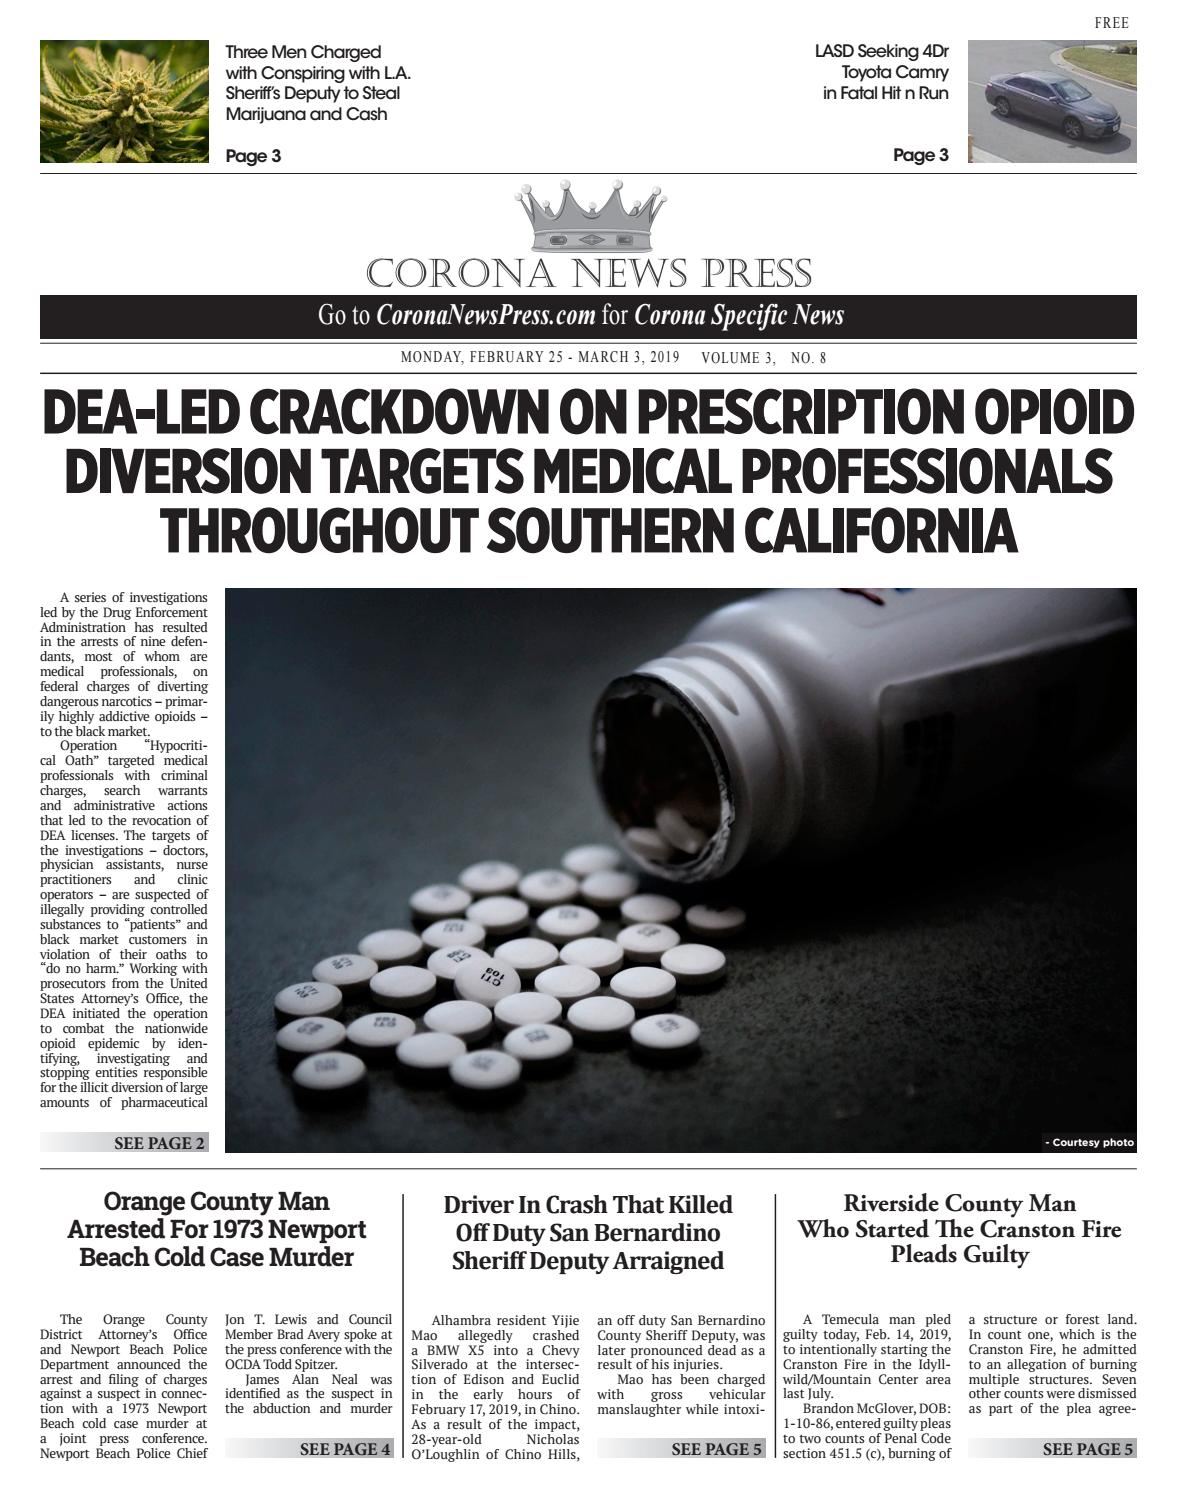 Corona News Press - 02/25/2019 by Beacon Media News - issuu